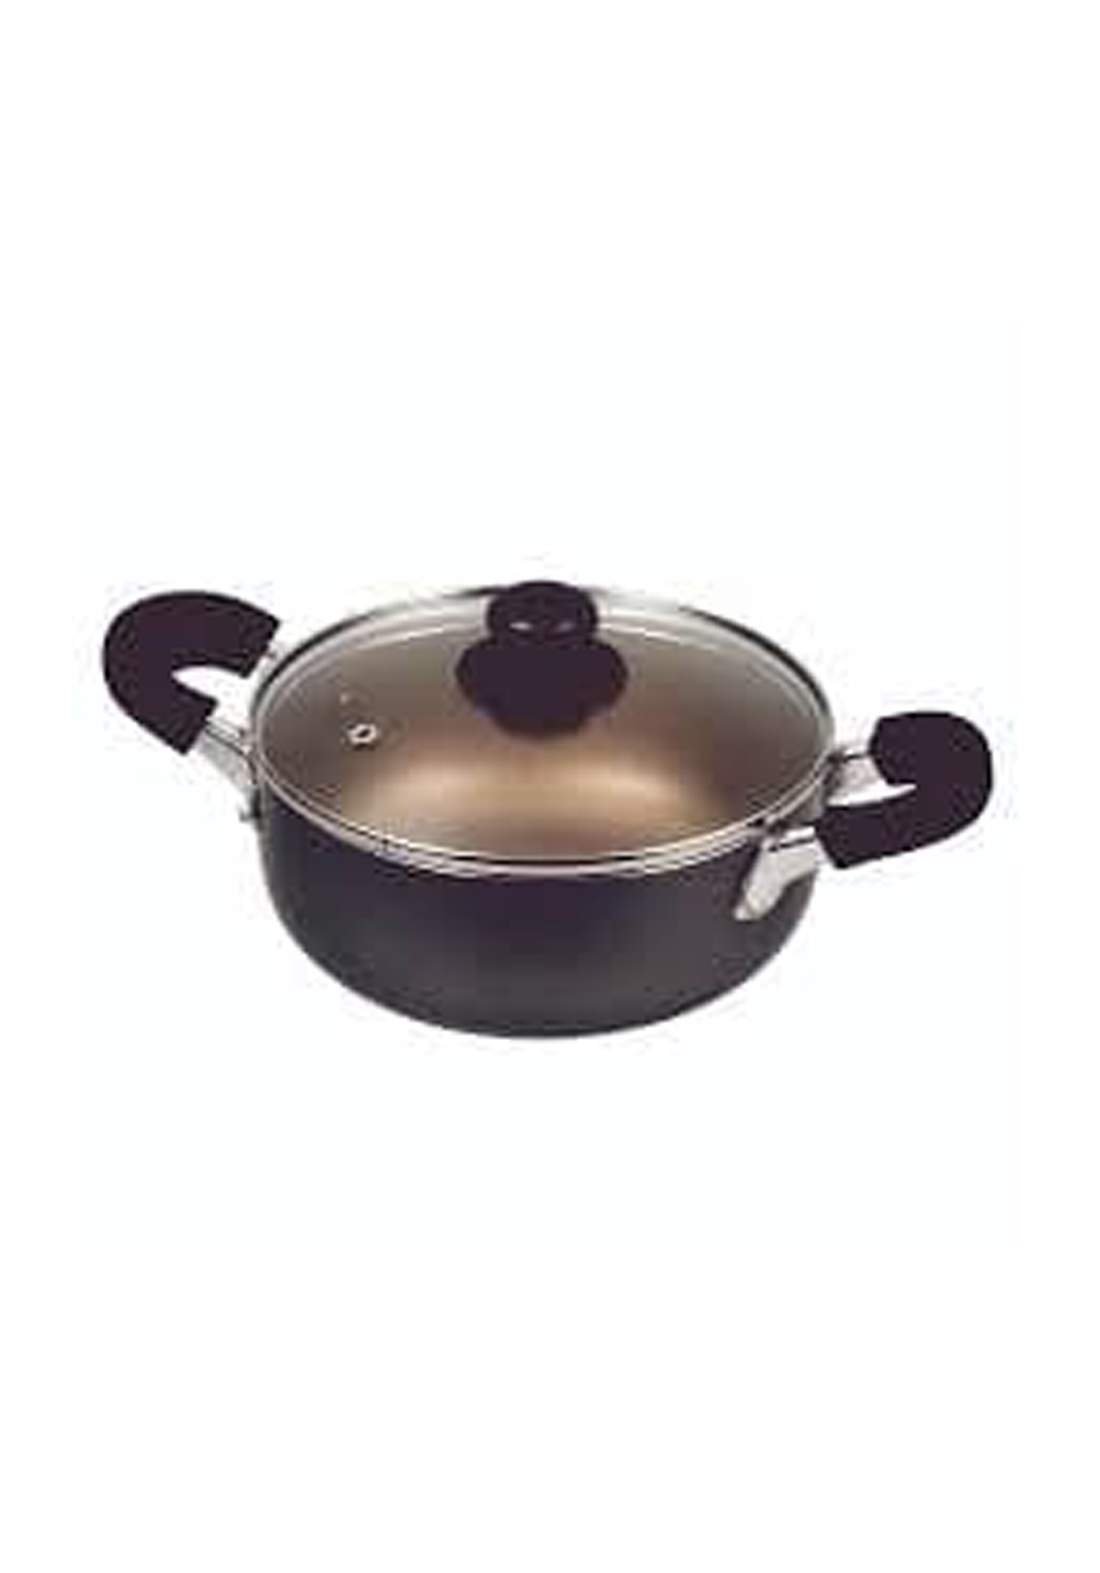 Pearl Metal HB-8013 Dinners Fluorine-processed two-handed pan with glass lid 20cm  قدر طعام